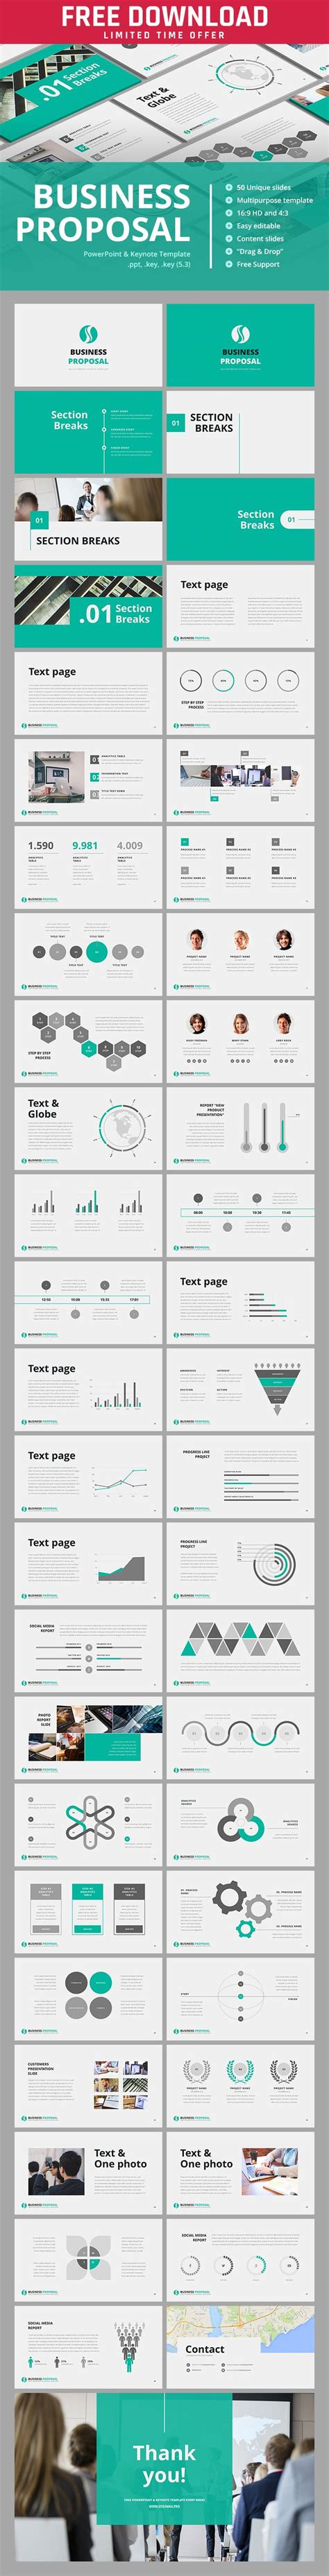 pinterest powerpoint layout 34 best images about free keynote template on pinterest